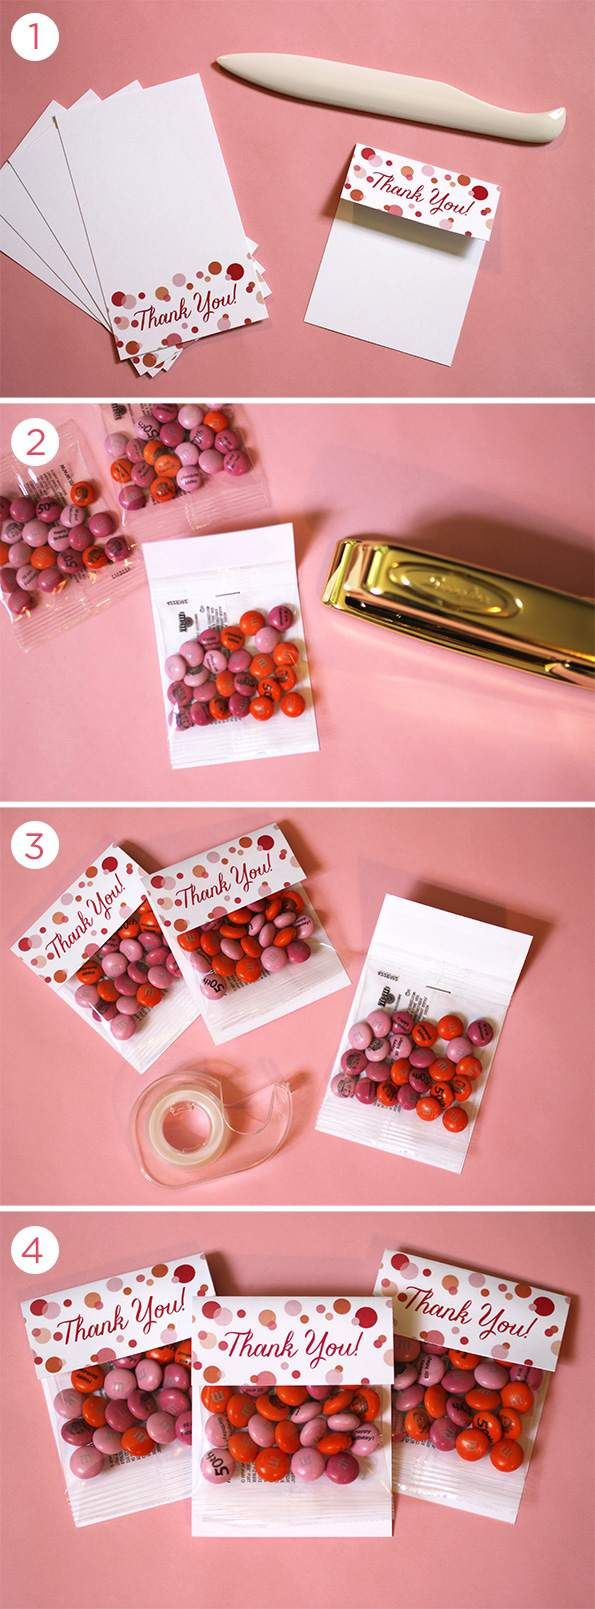 12 DIY Favor Ideas for You to Try - Pretty Designs